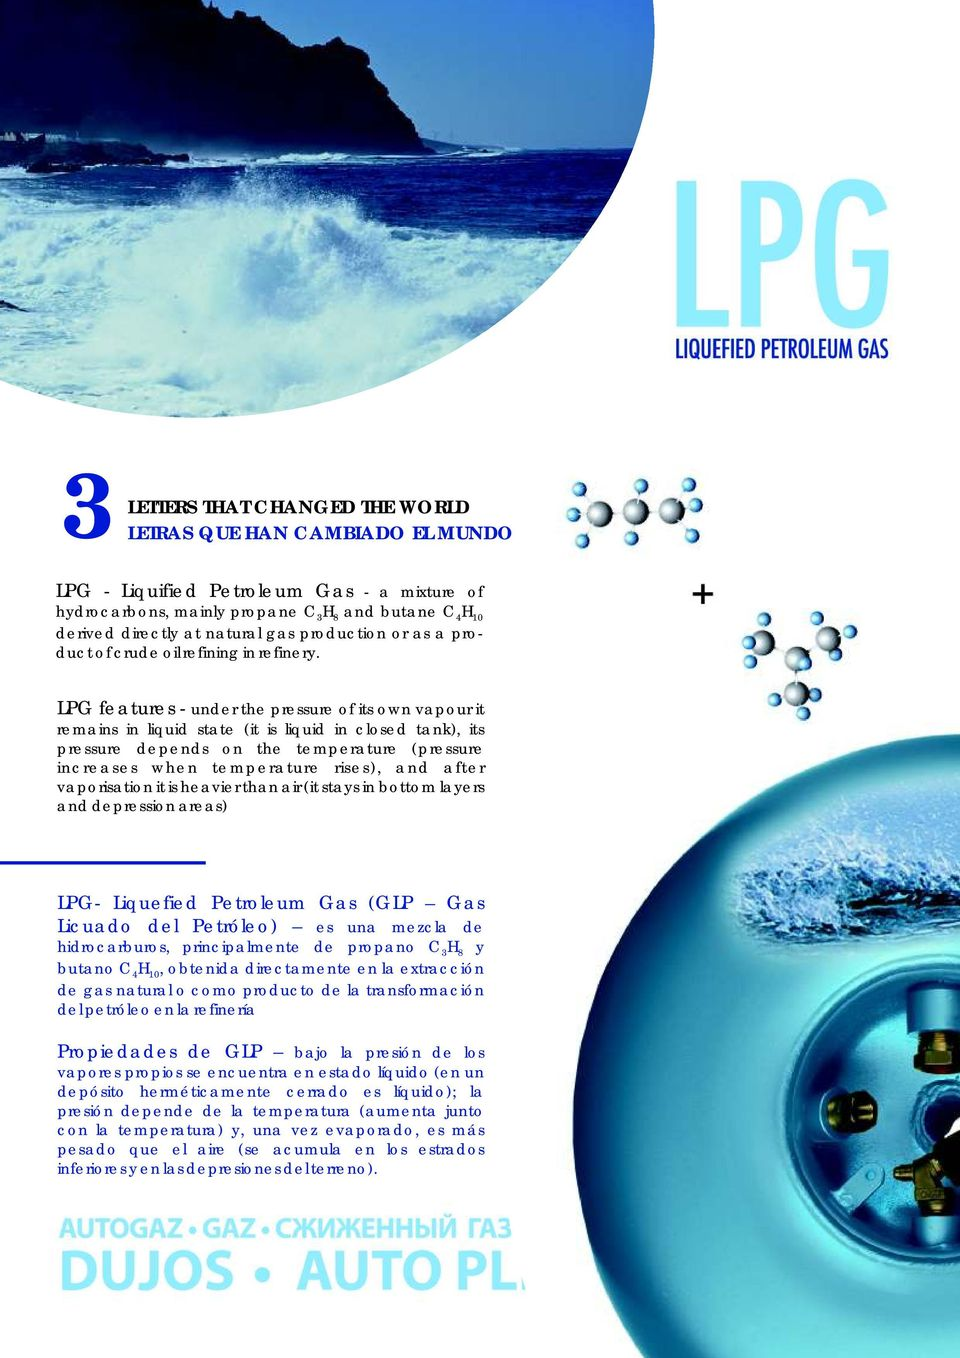 LPG features - under the pressure of its own vapour it remains in liquid state (it is liquid in closed tank), its pressure depends on the temperature (pressure increases when temperature rises), and